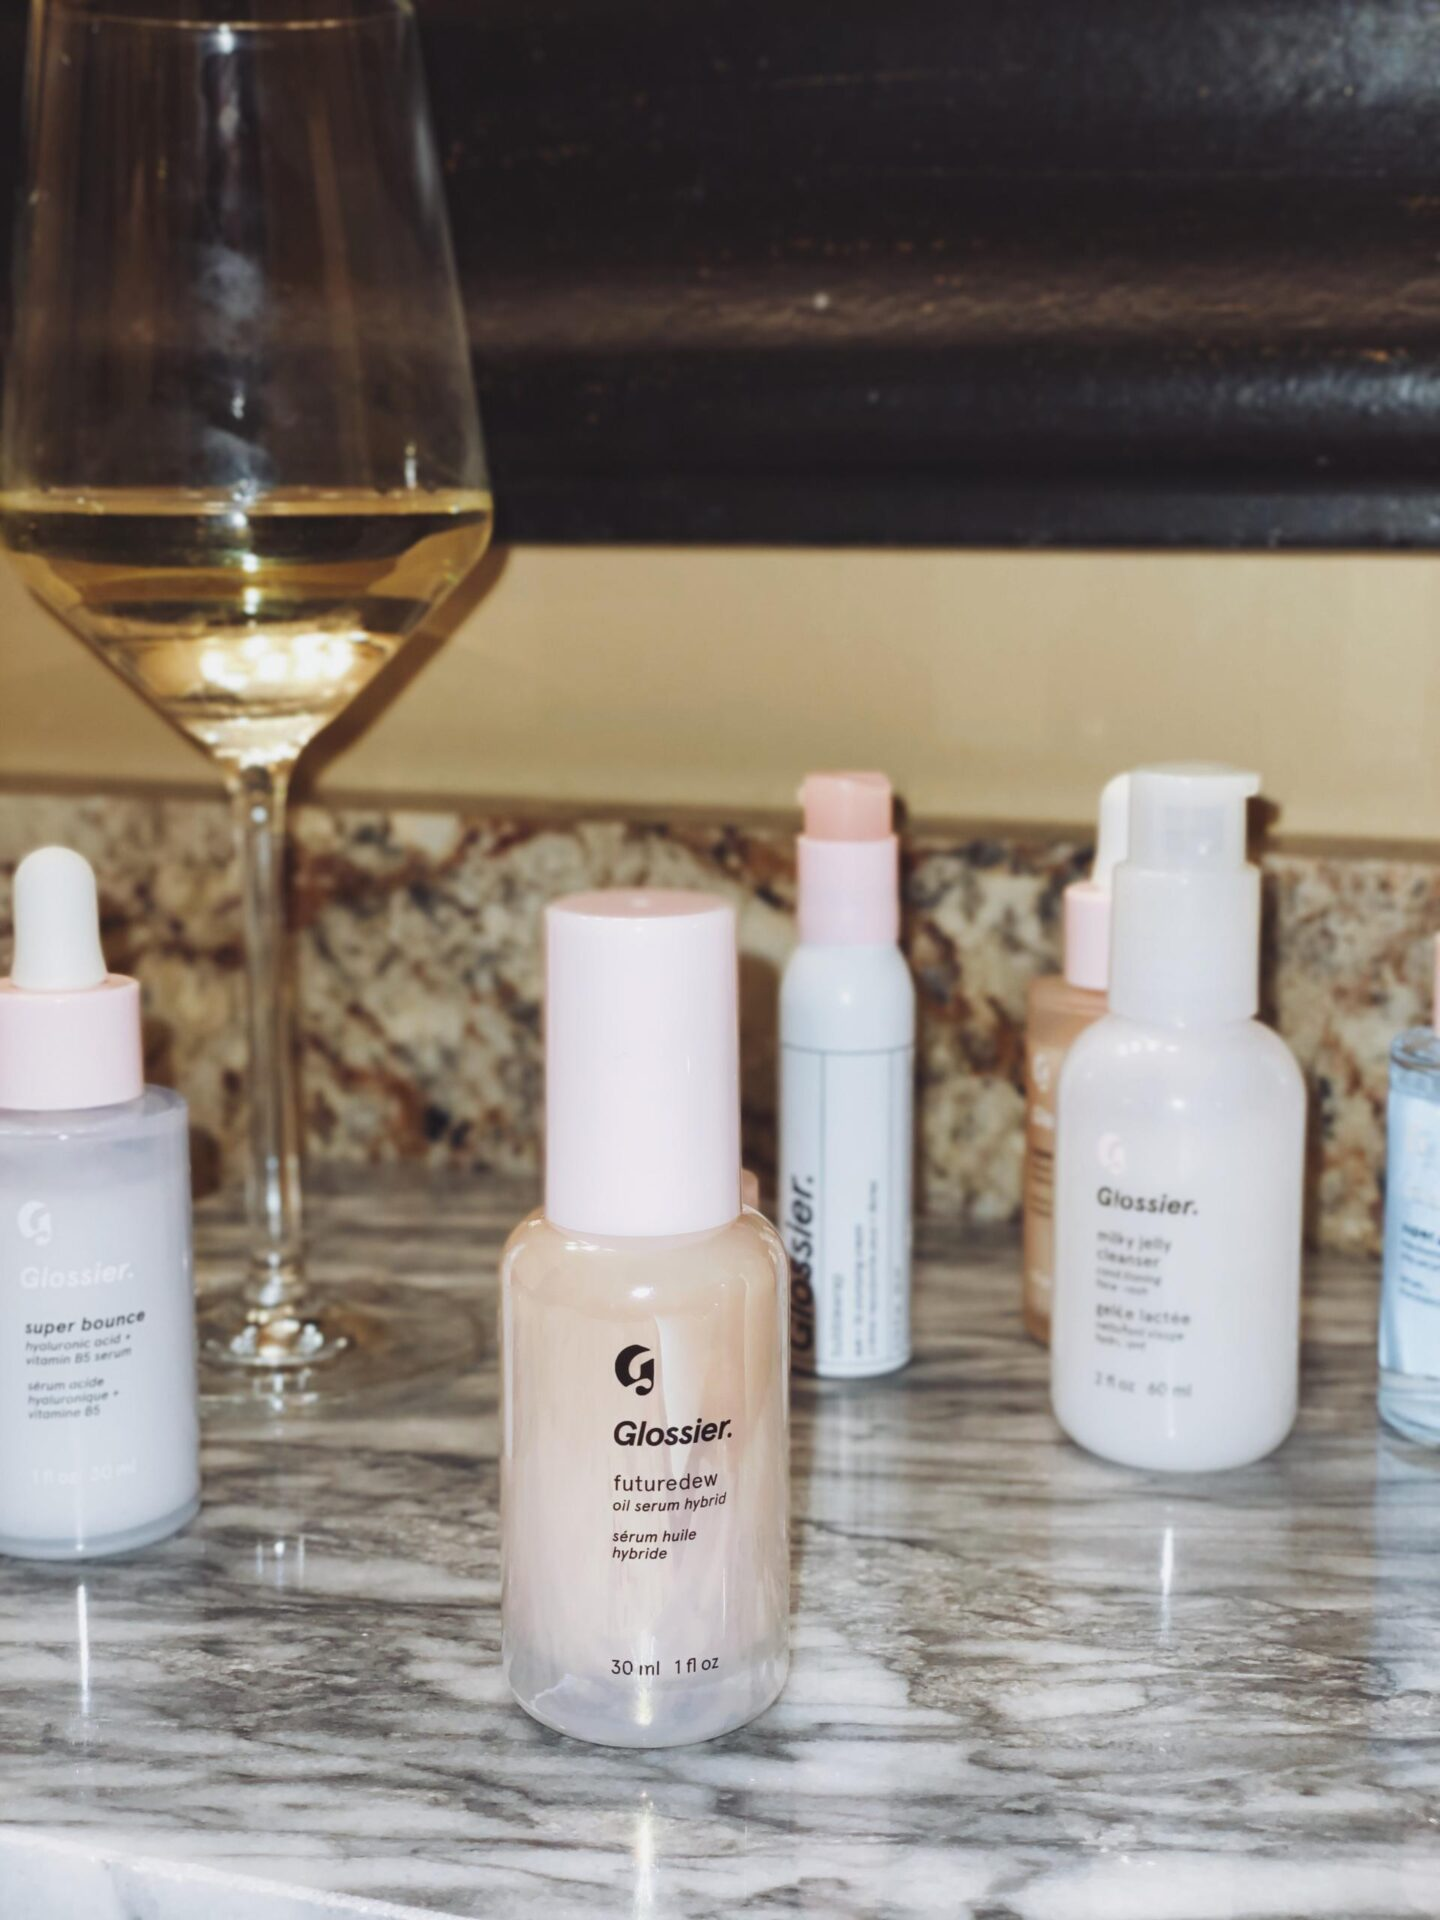 Glossier Futuredew Review